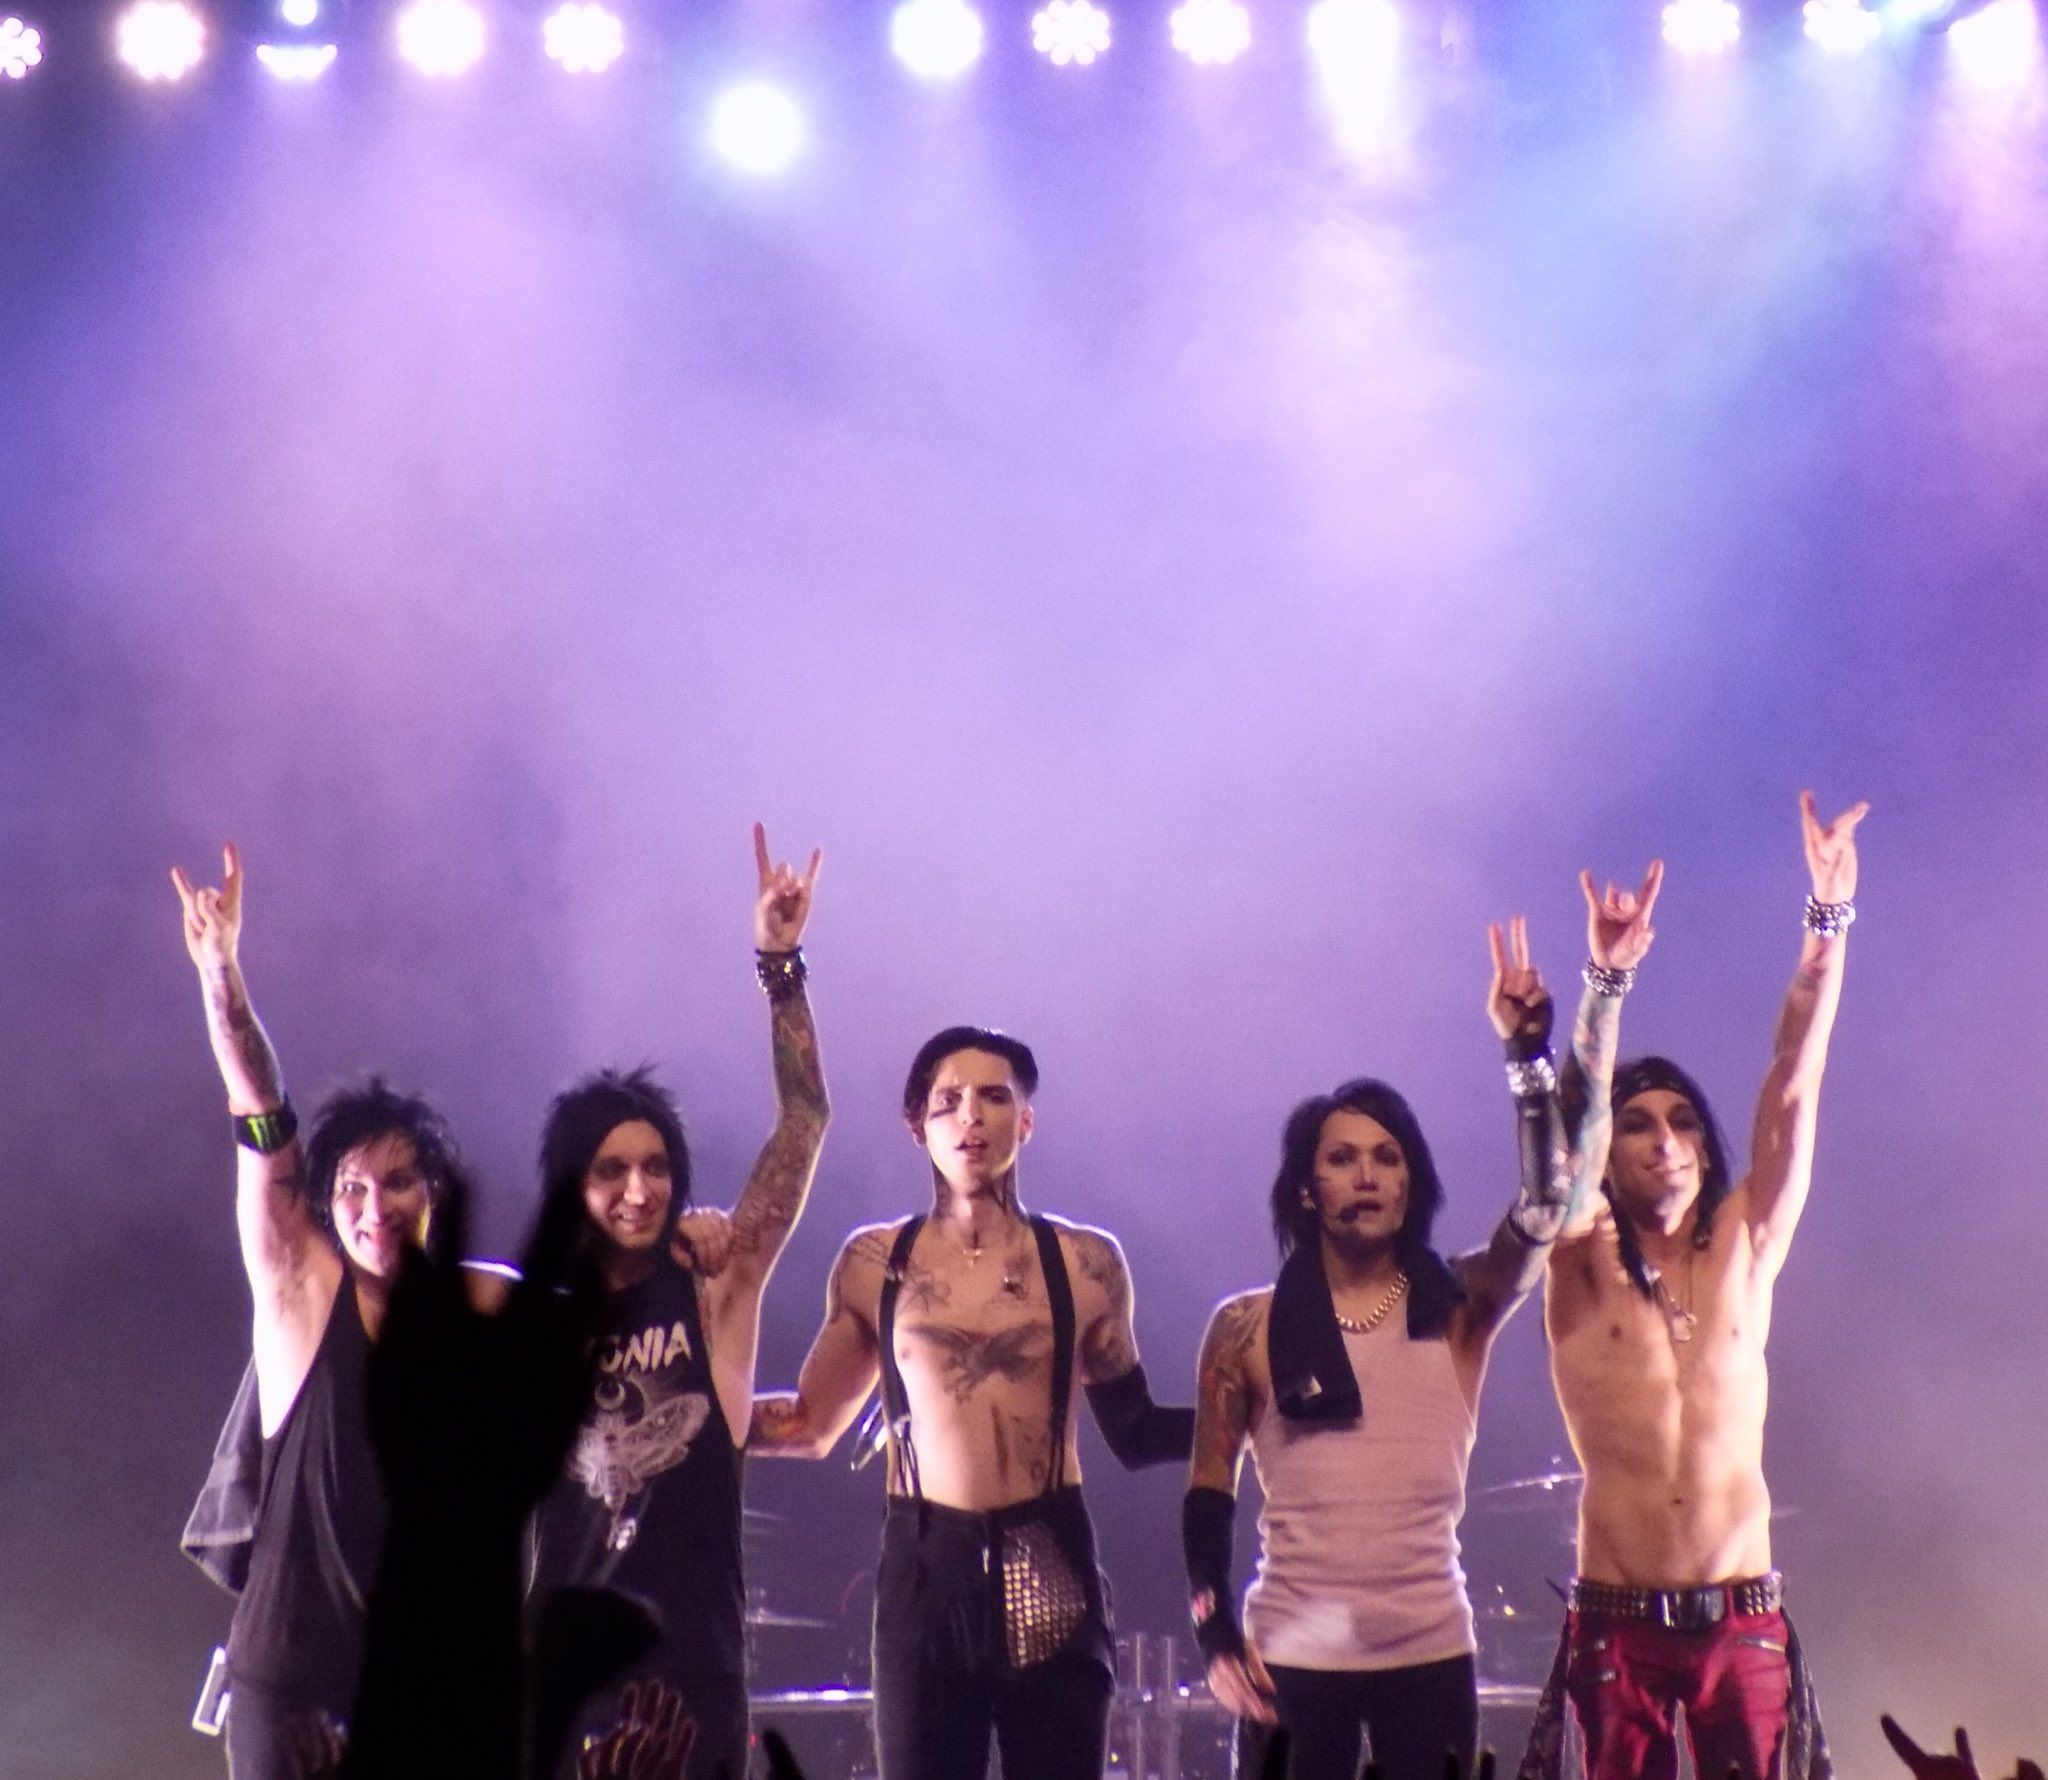 Black Veil Brides Killed It Last Night Jinxxbvb Ashleypurdy